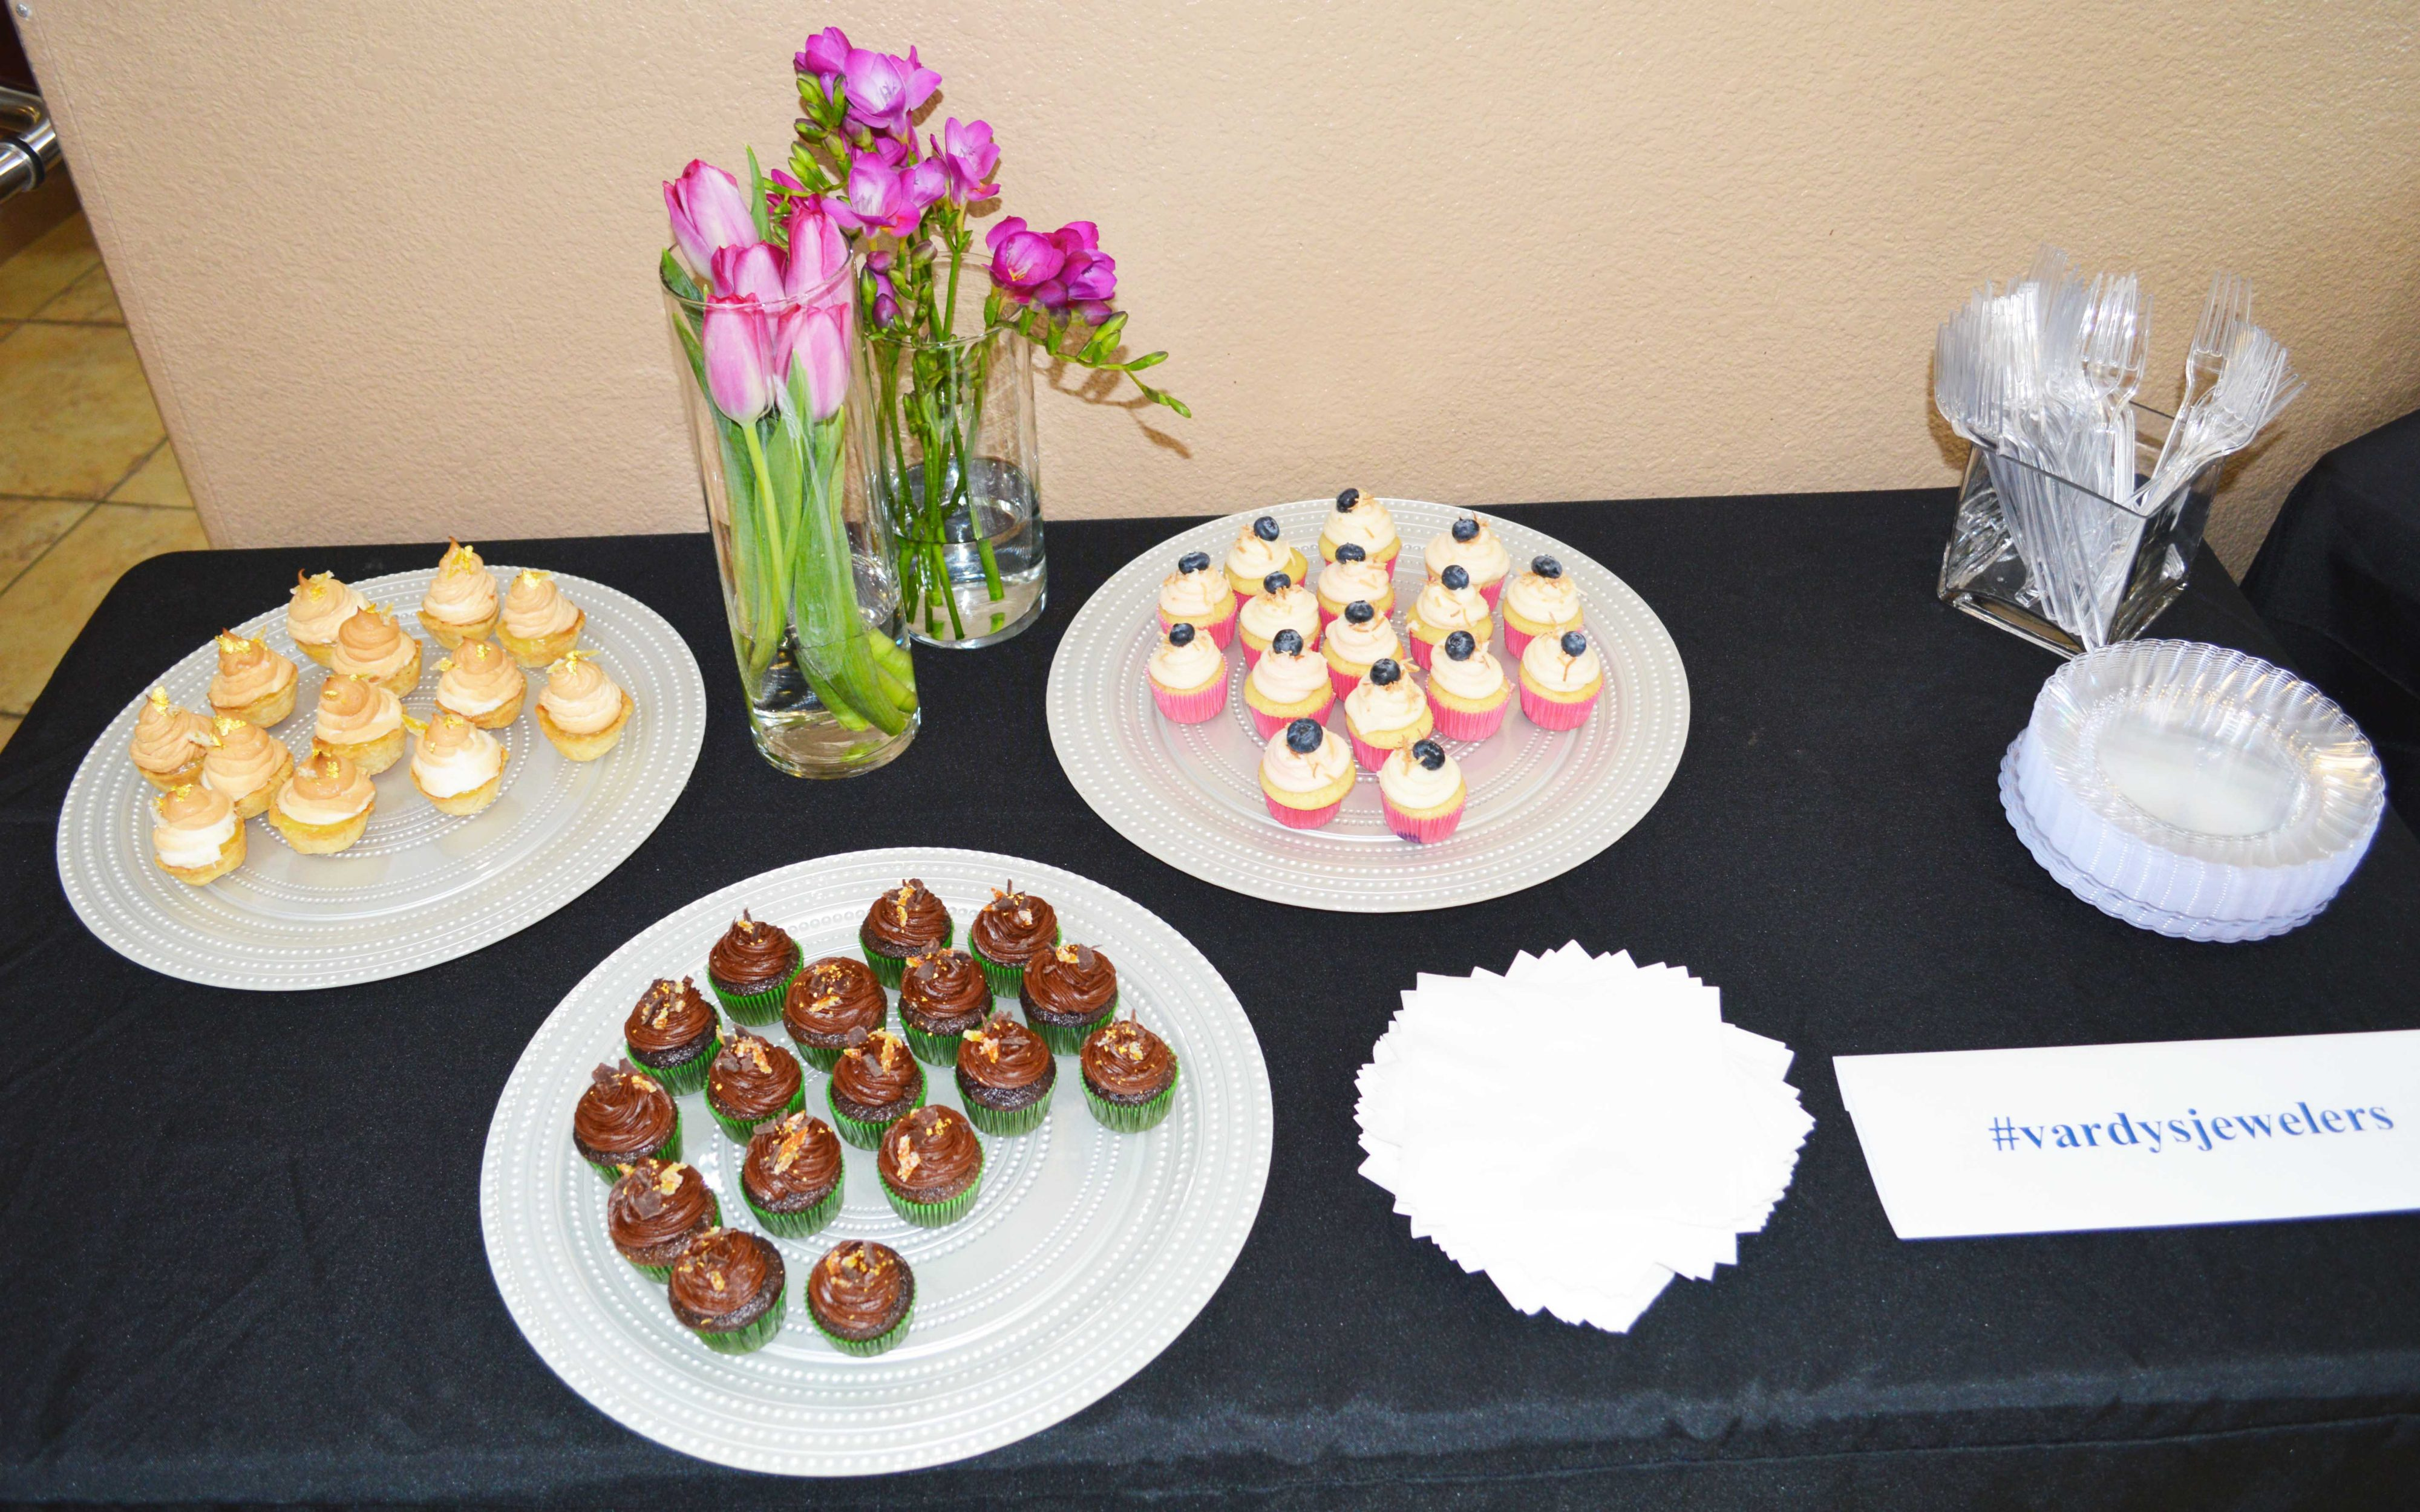 food at vardys 35 anniversary party